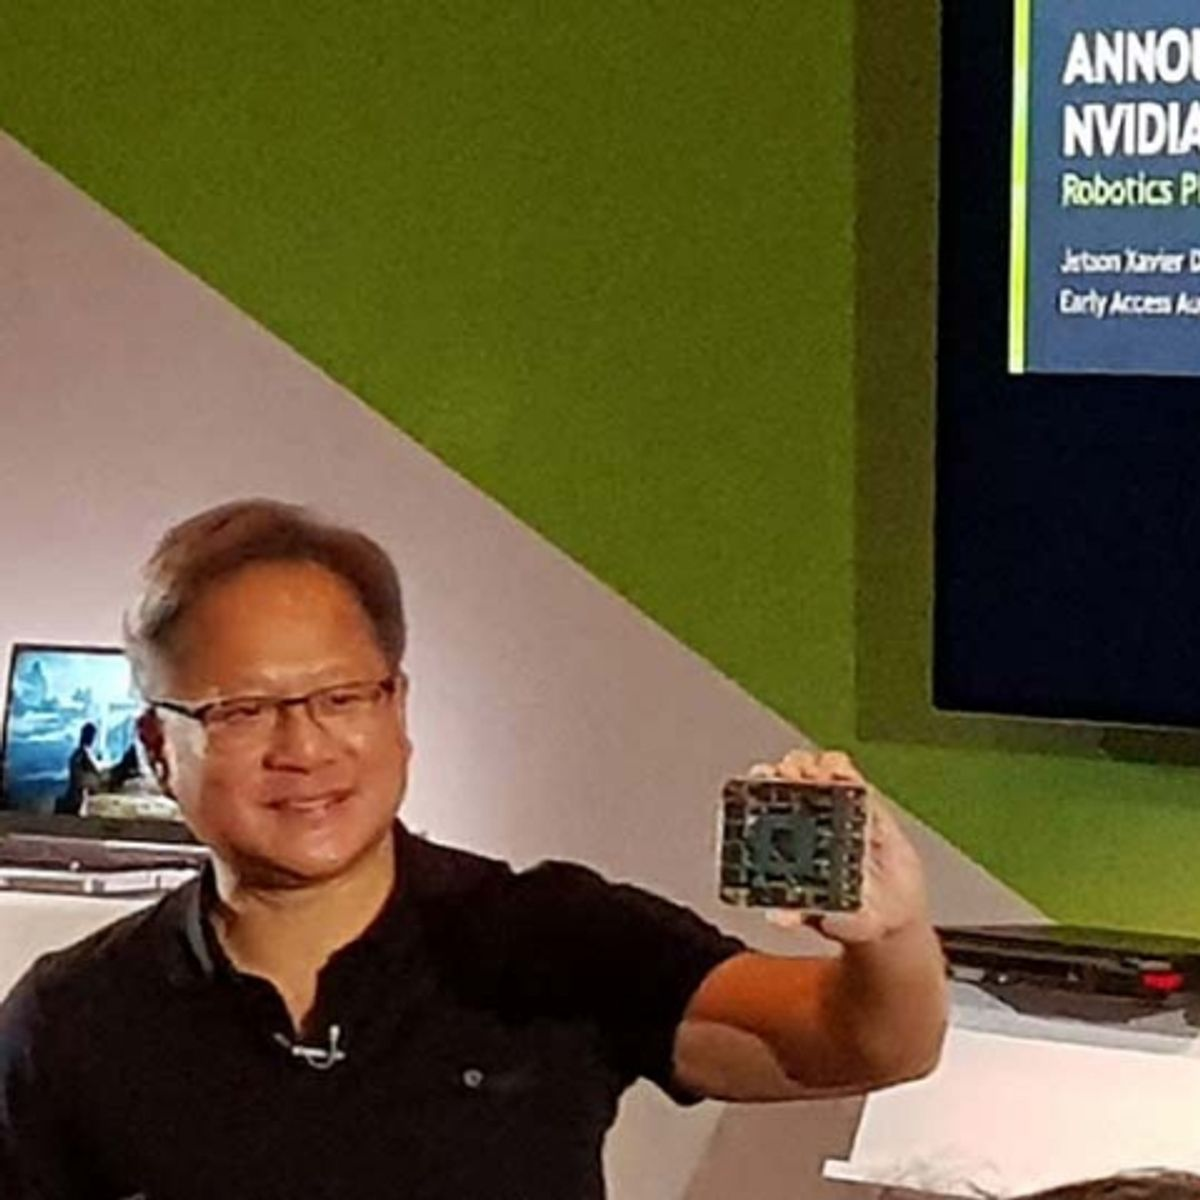 NVIDIA announces Isaac, autonomous robotics platform at